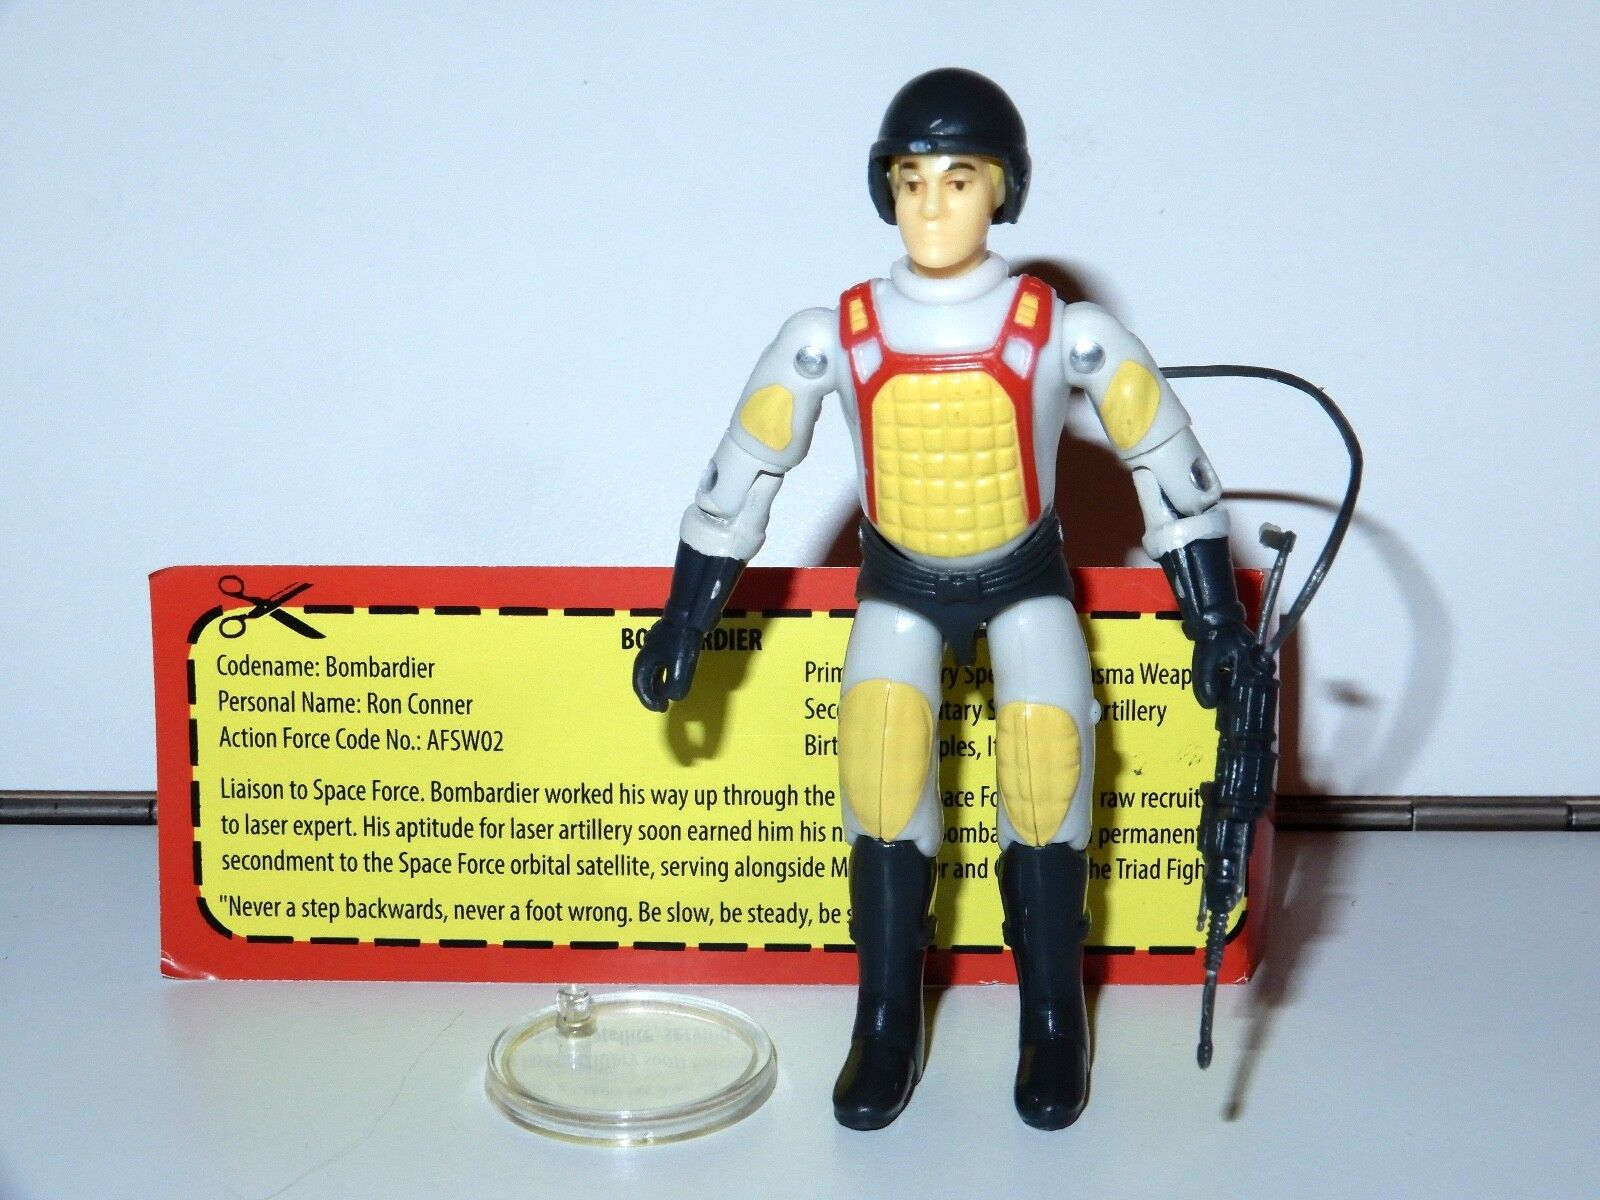 2017 GI JOE   ACTION FORCE SPECIAL WEAPONS 'BOMBARDIER v1.5' - BFTB EXCLUSIVE UK